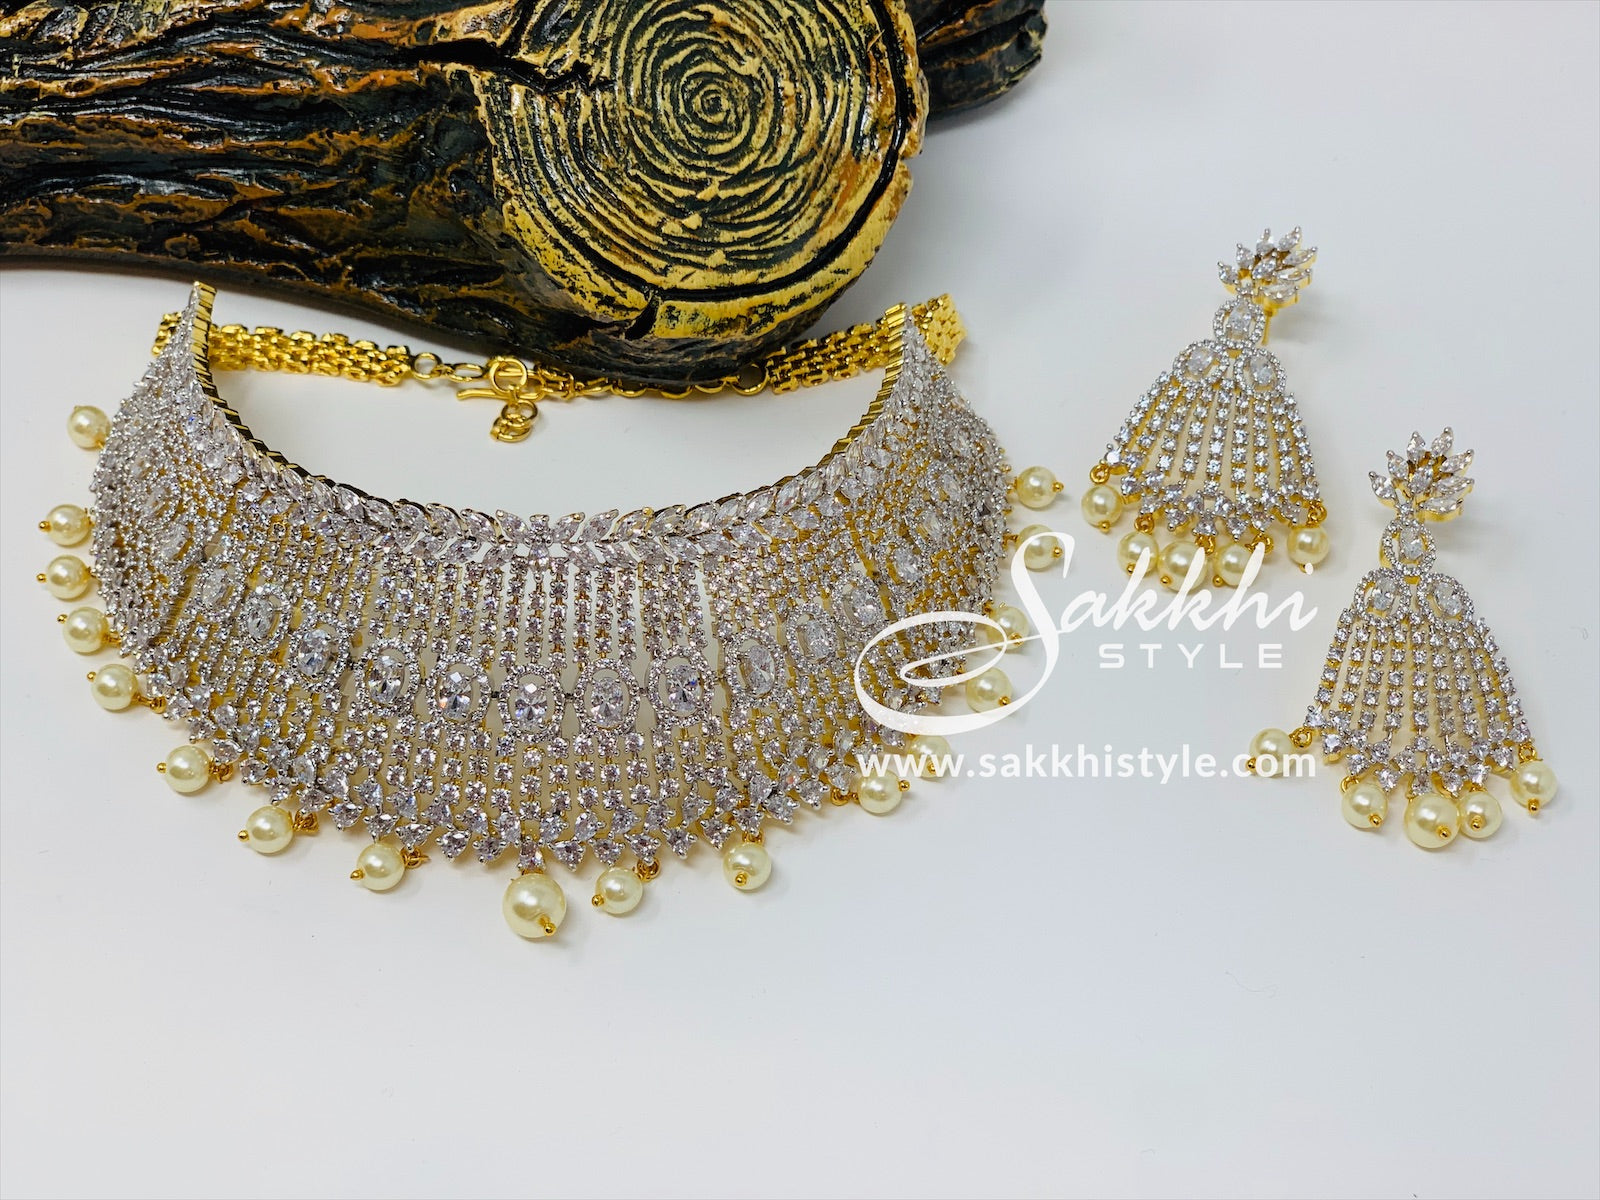 Diamond Cut CZ Stones Choker Necklace Set - Sakkhi Style